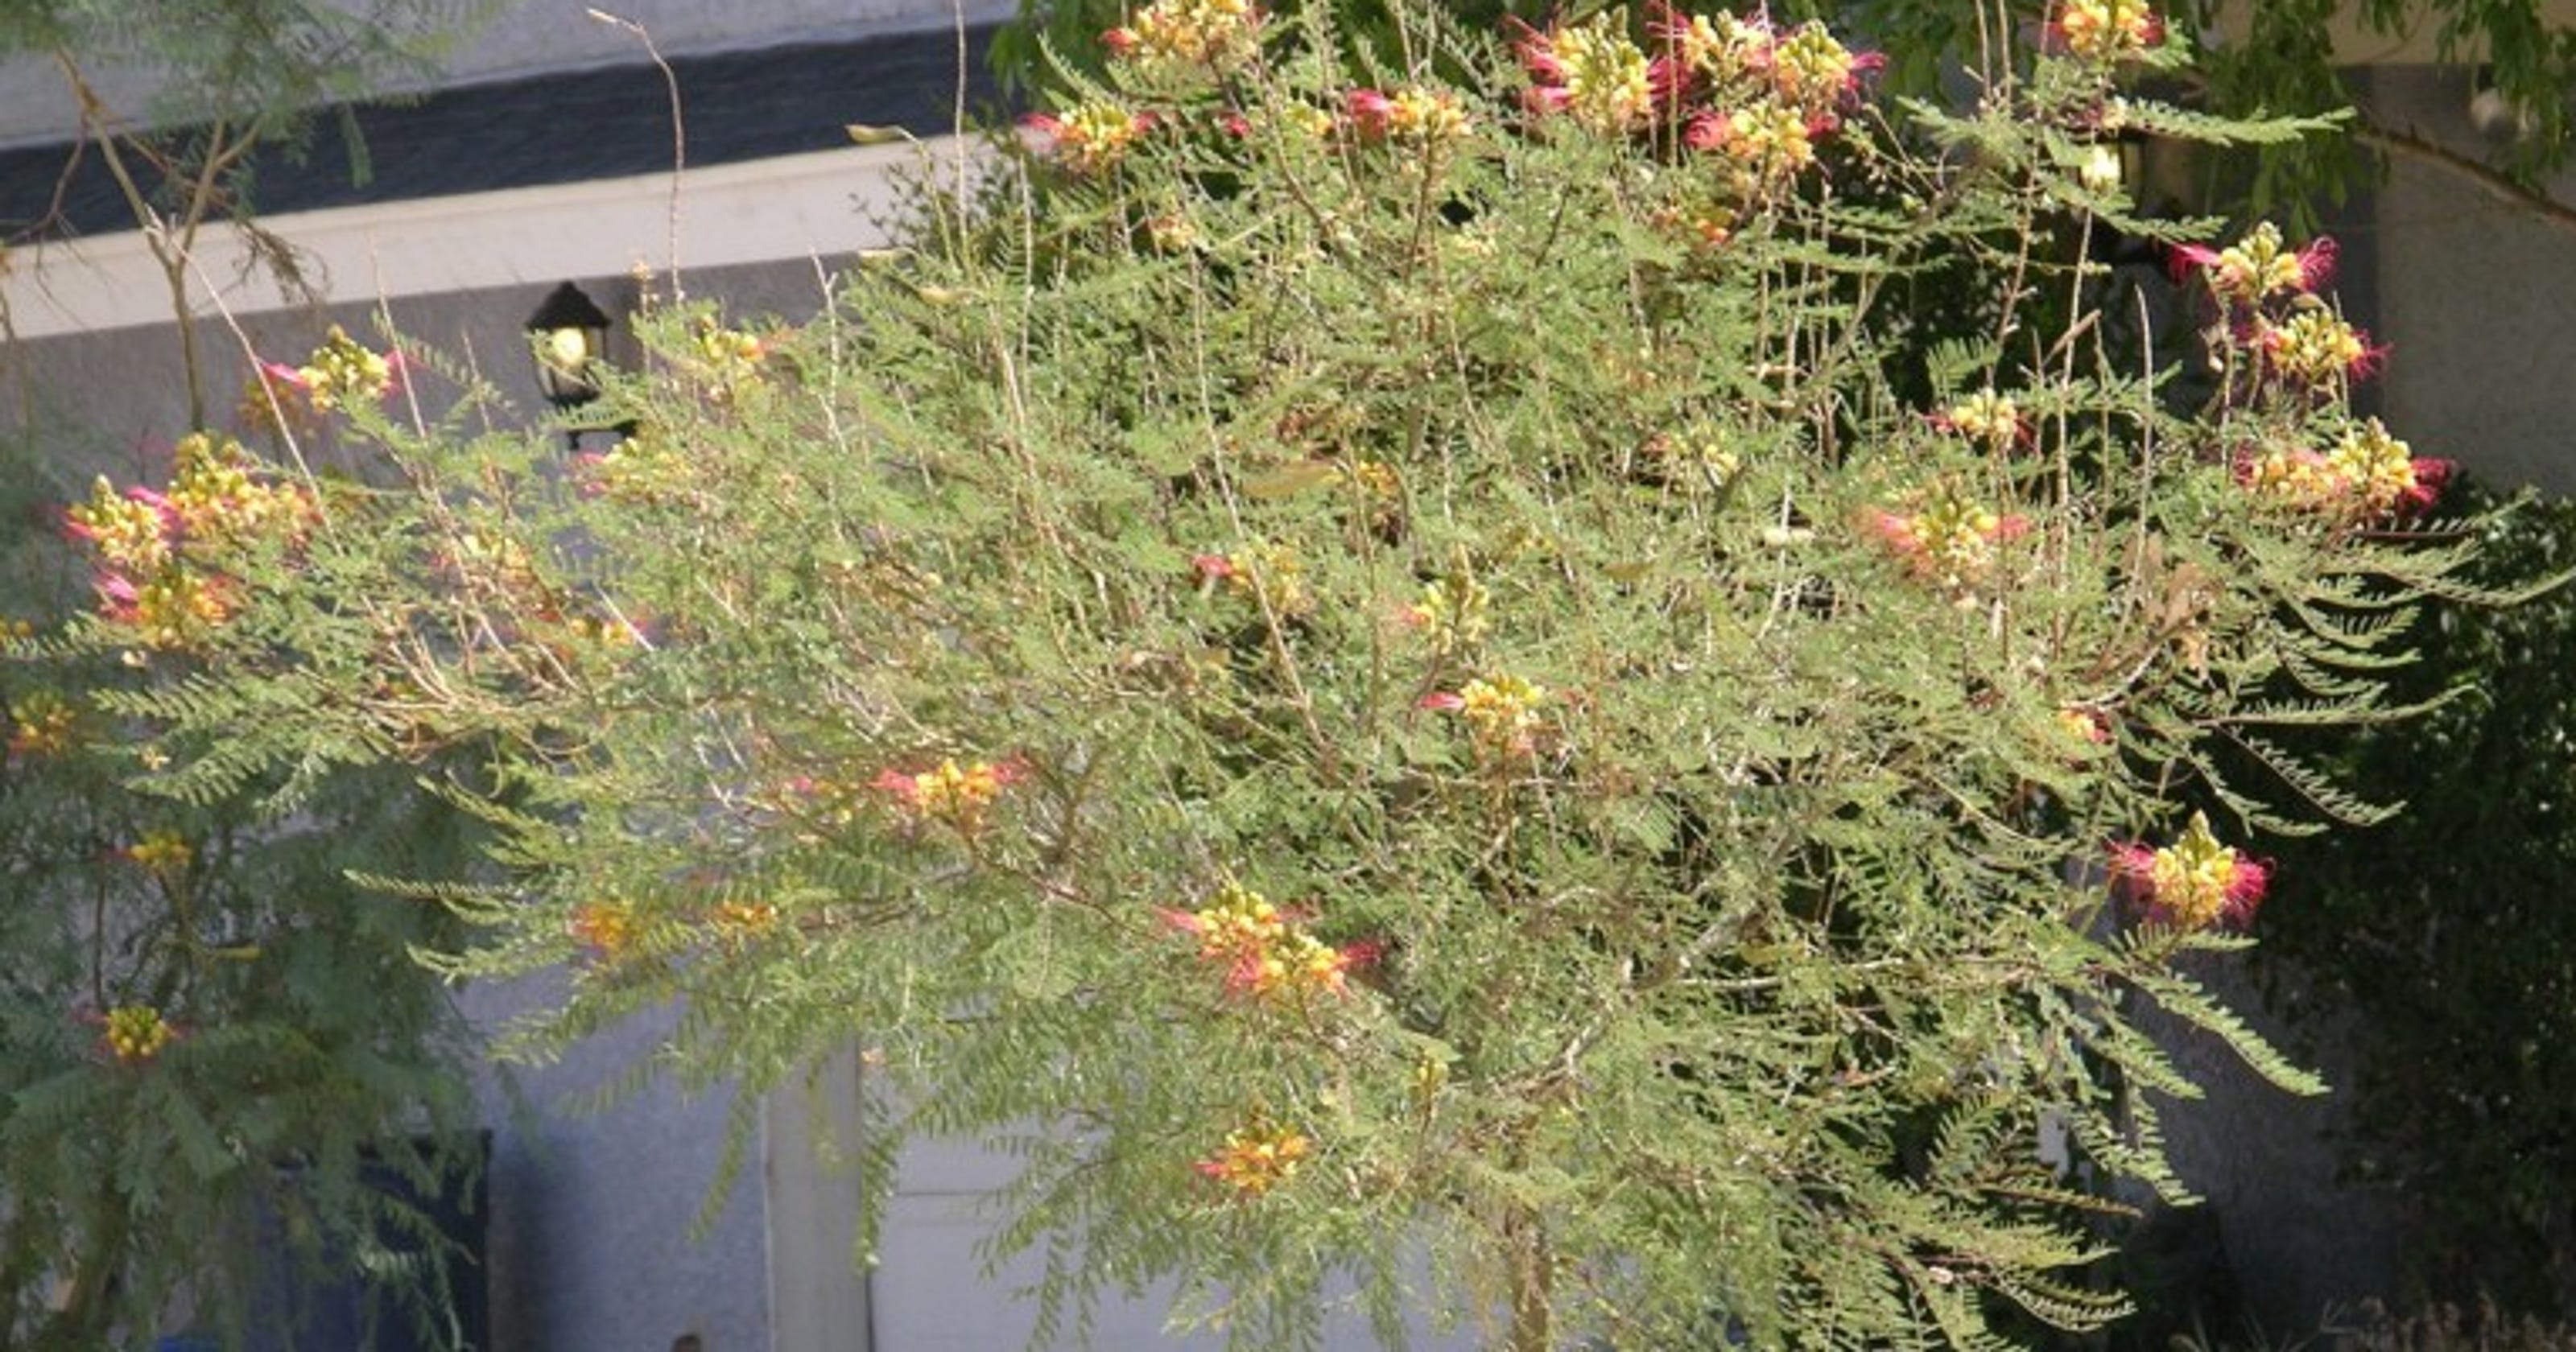 What Is The Proper Care For Mexican Bird Of Paradise